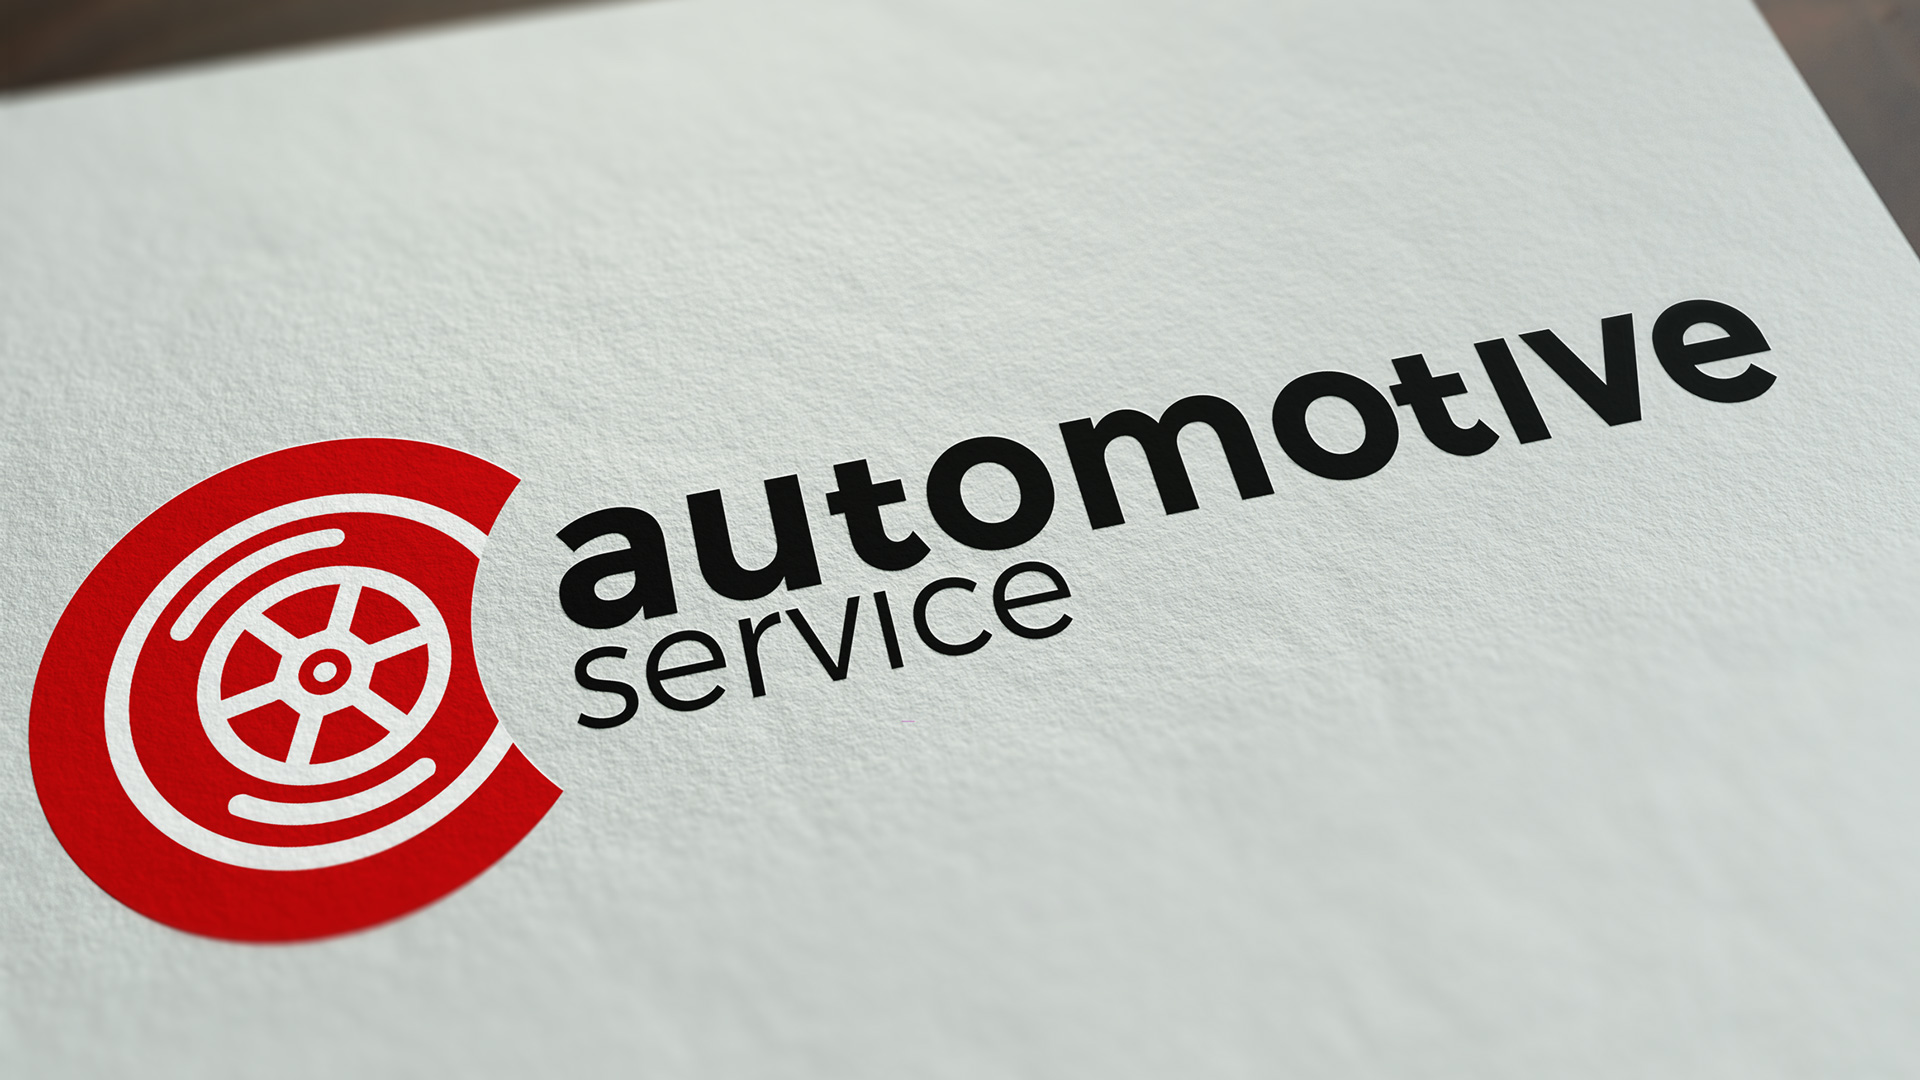 Automotive - Logo